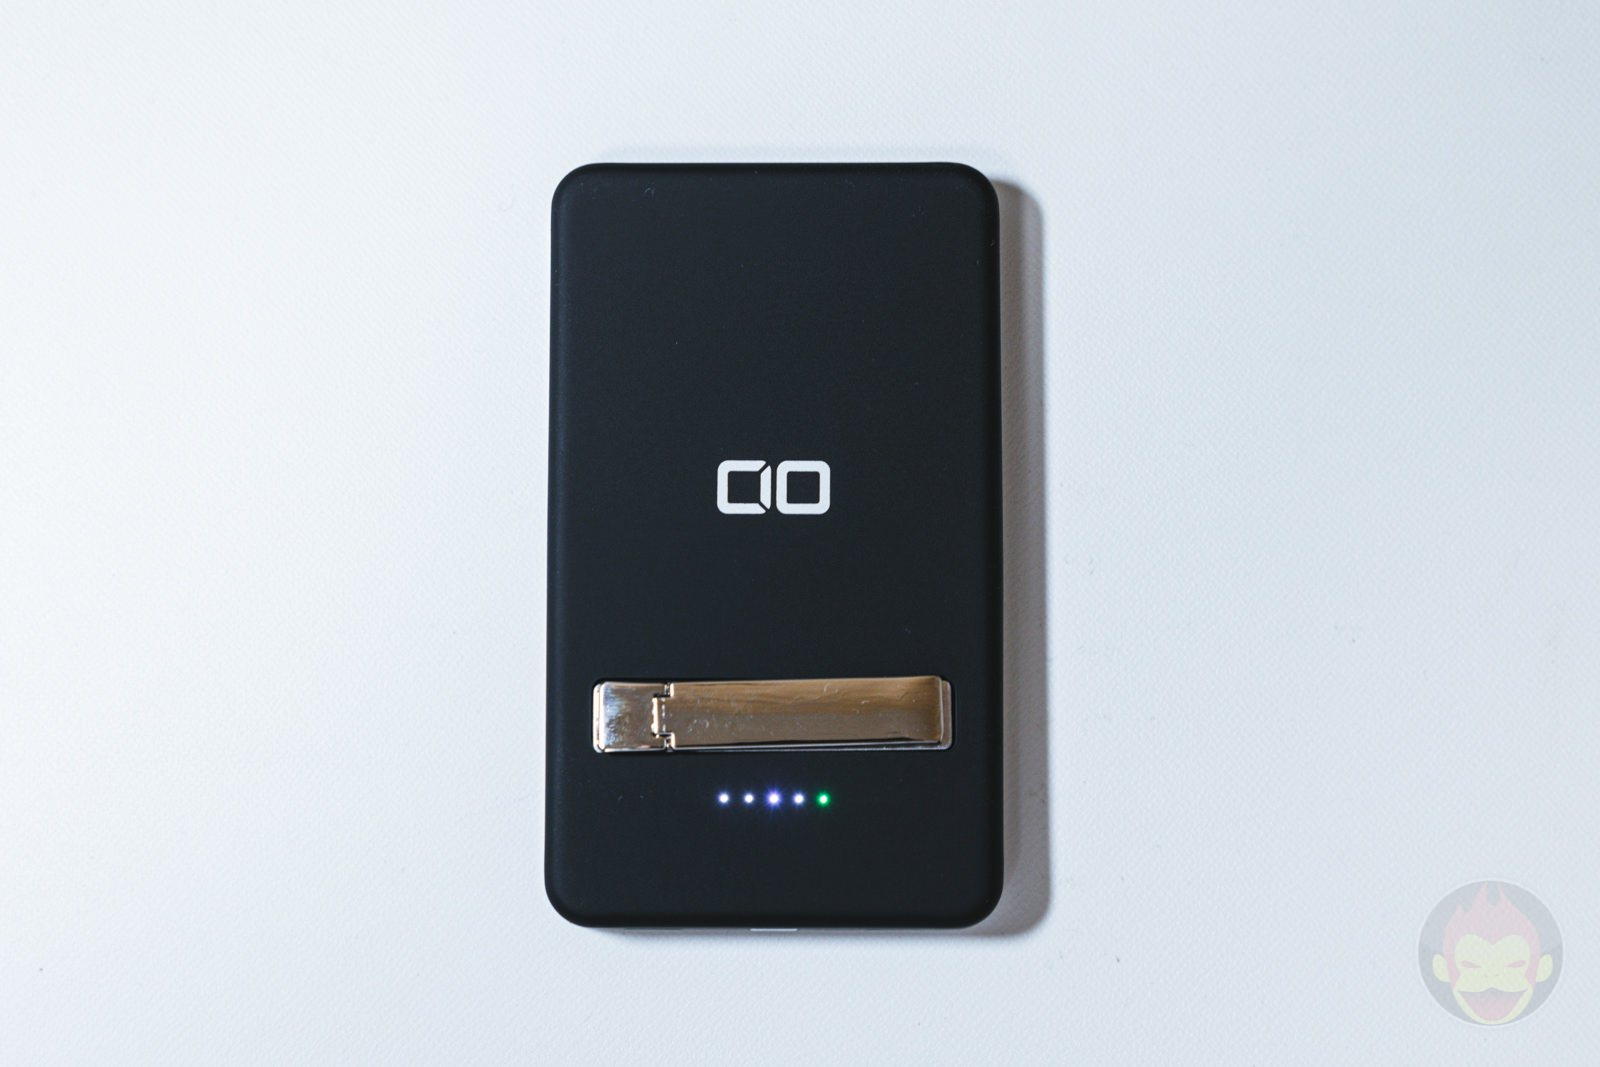 CIO-MB5000-MAG-MagSafe-Supported-Mobile-Battery-Review-11.jpg